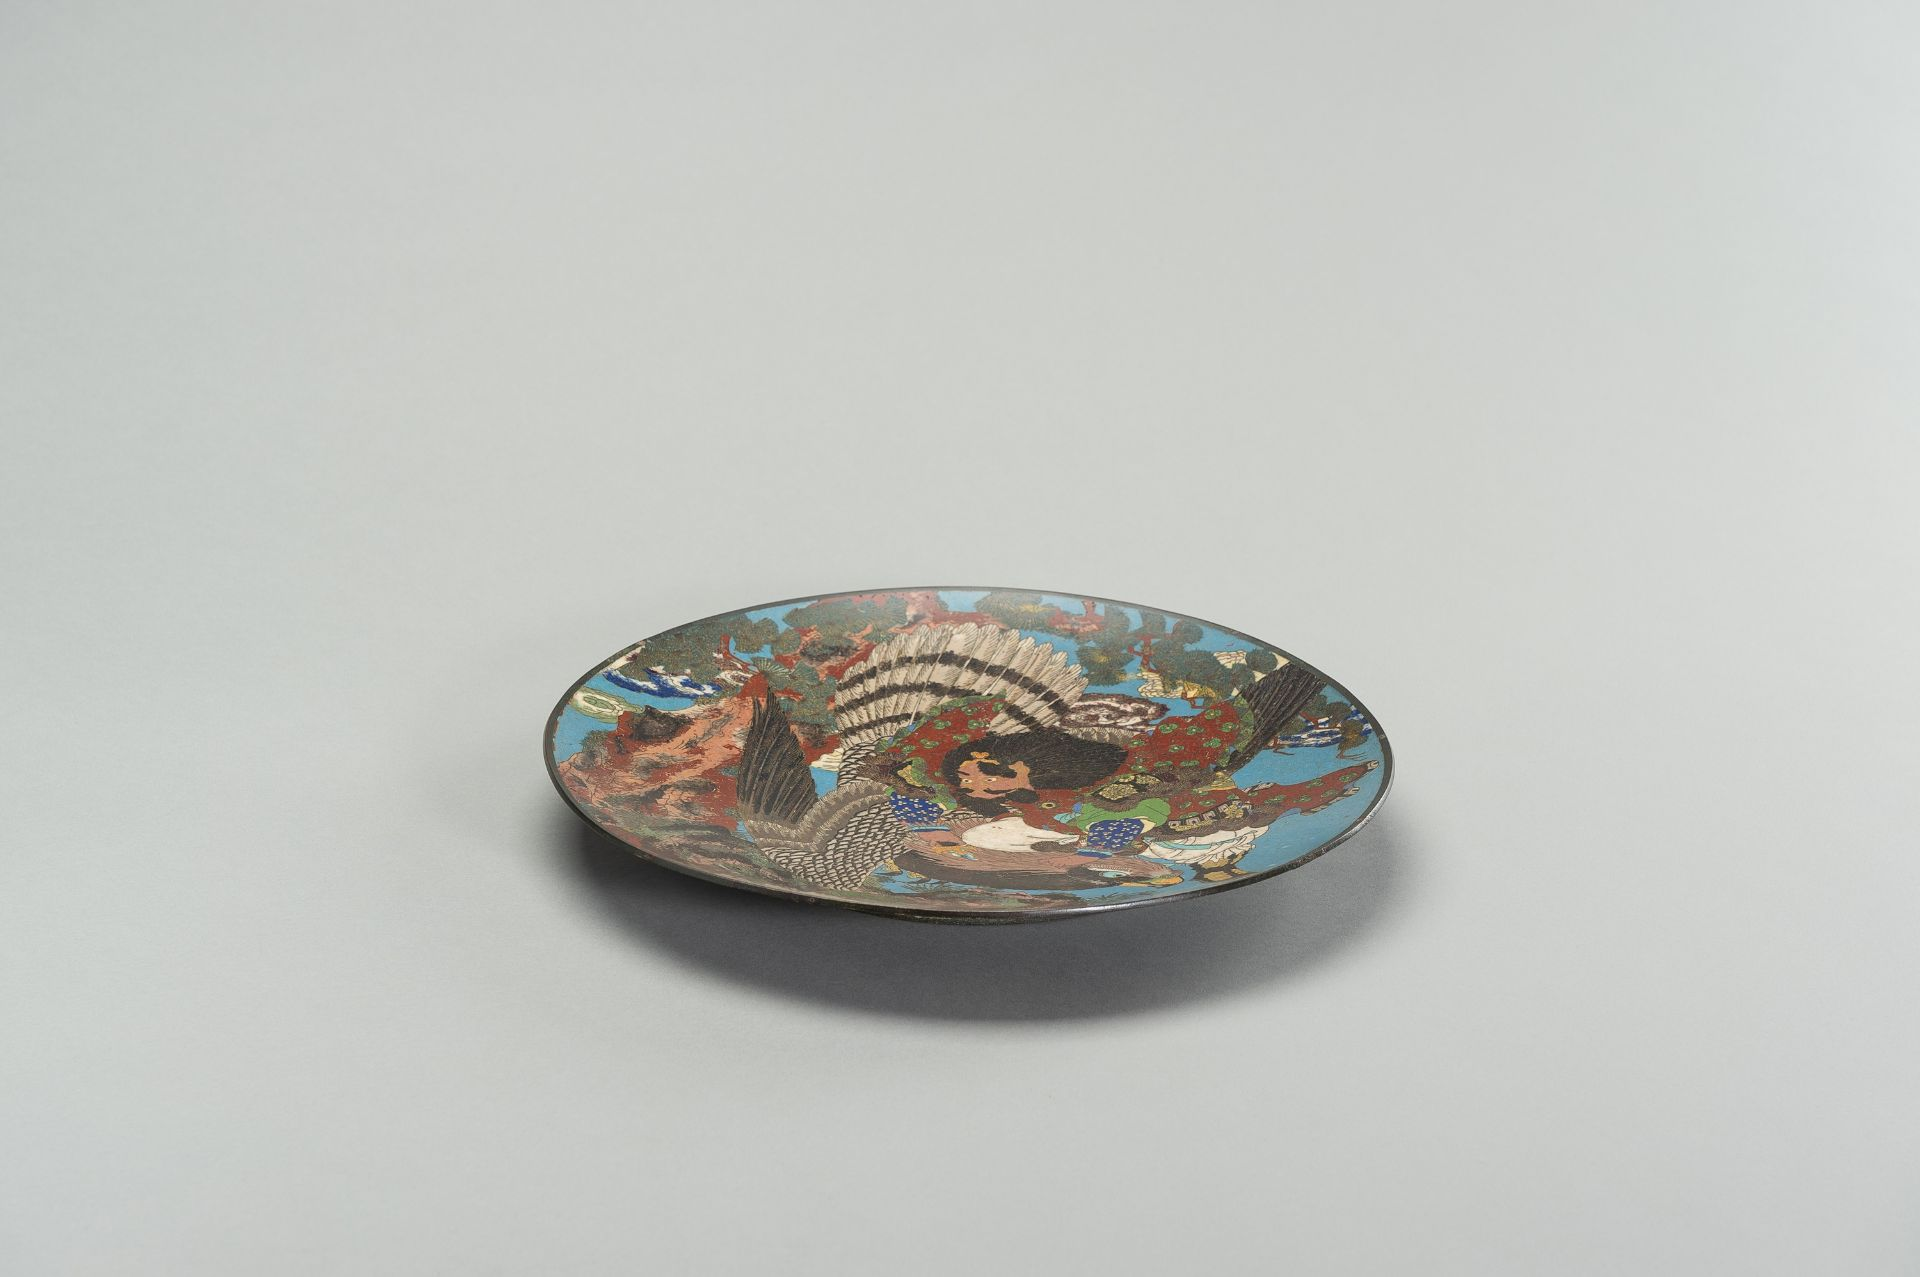 A LARGE CLOISONNE ENAMEL PLATE WITH FIGURAL DECOR - Image 4 of 7